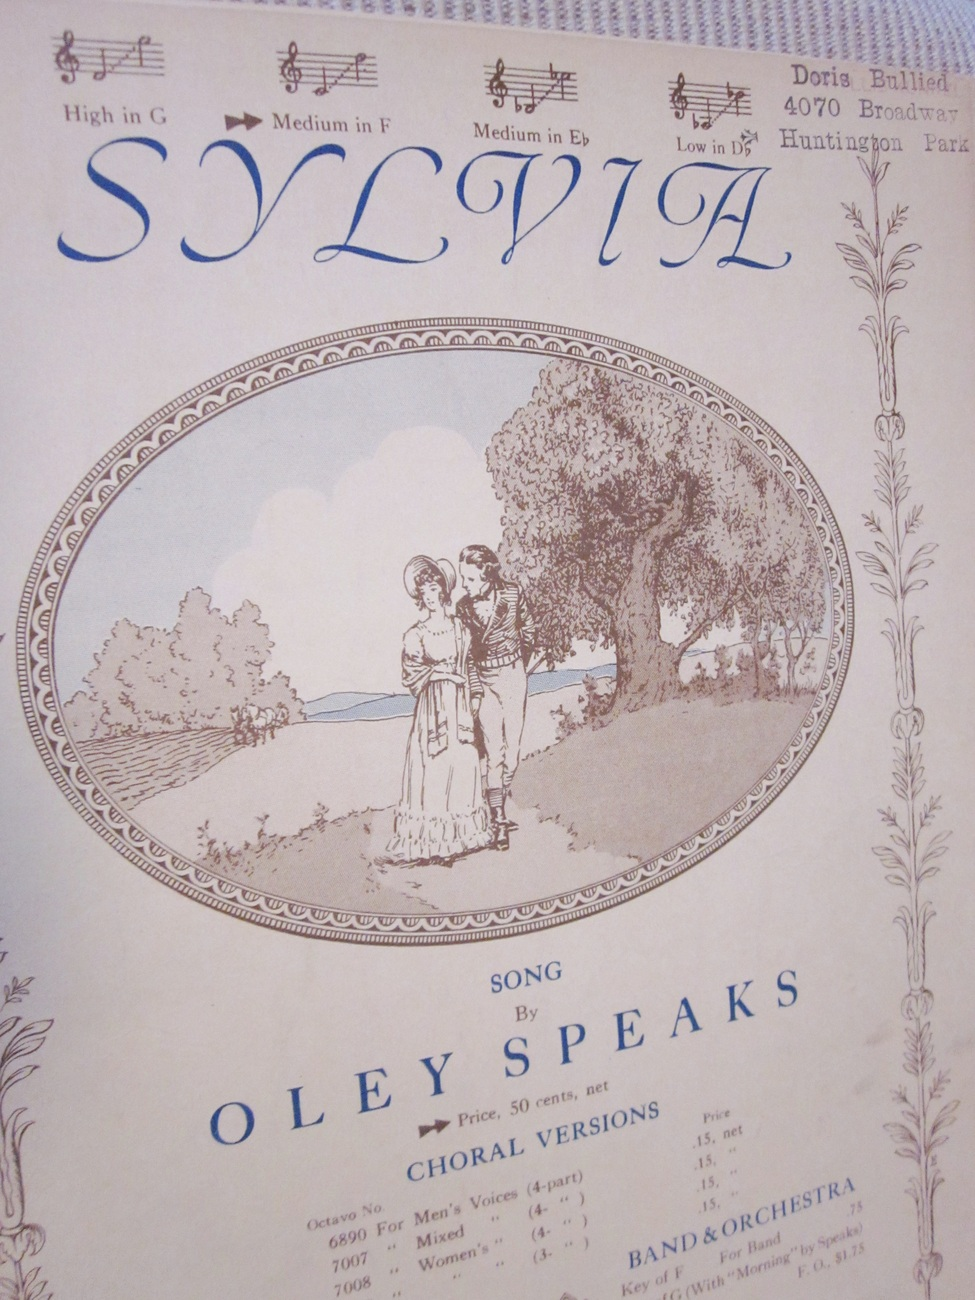 Vintage Sheet Music Sylvia Song by Oley Speaks 1914